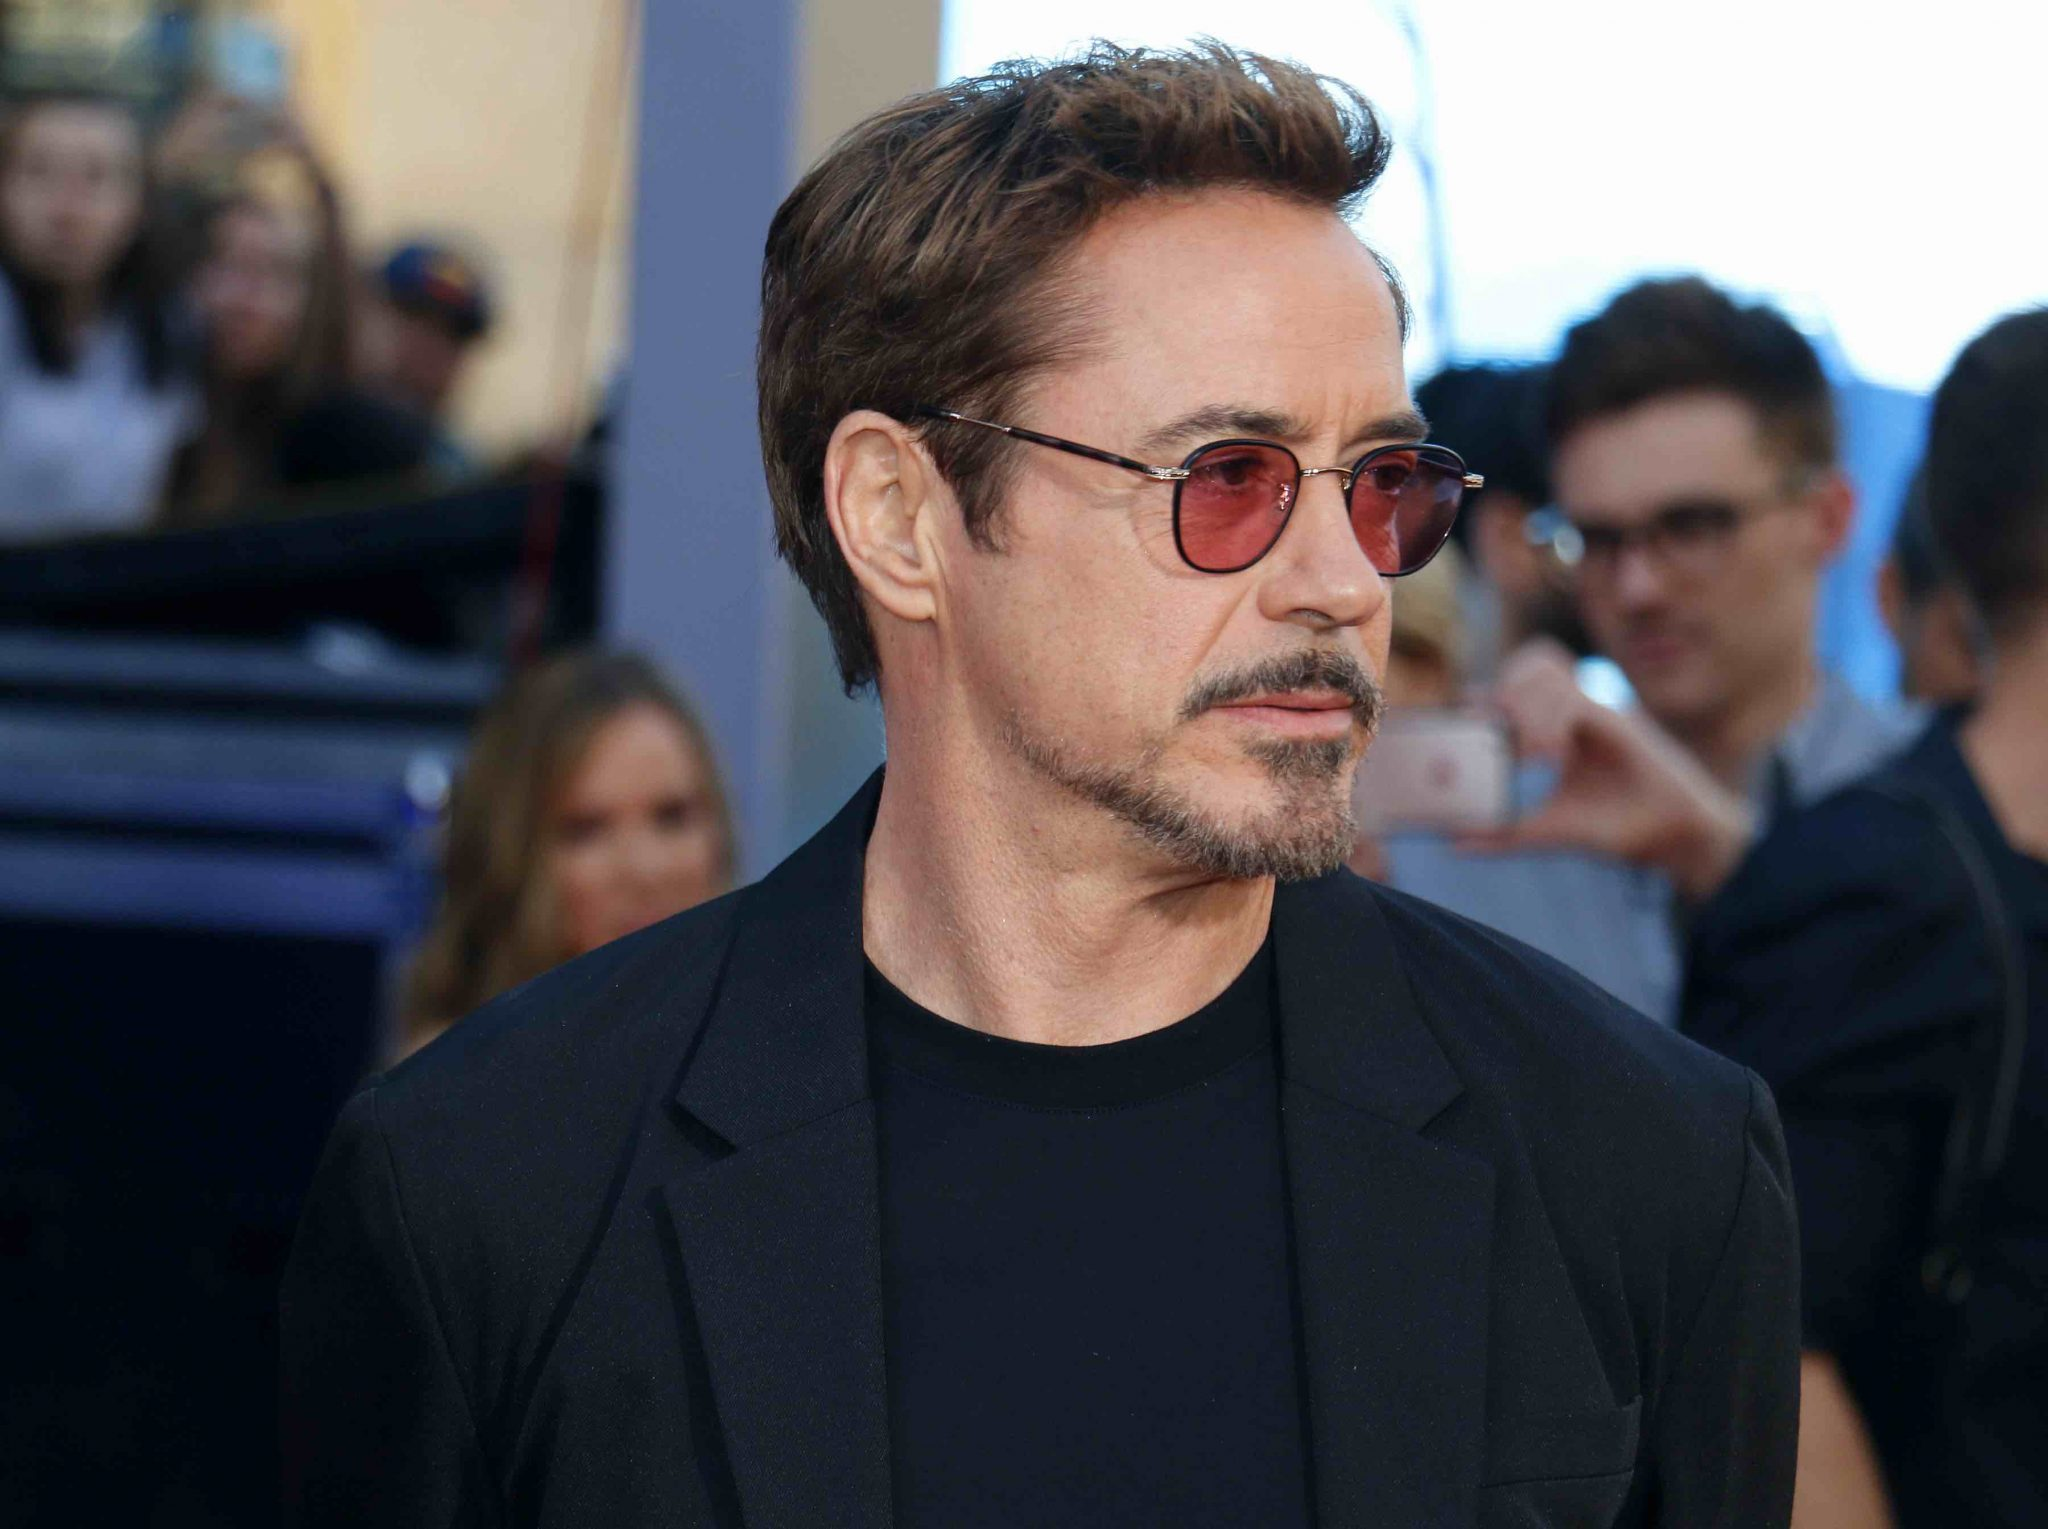 Robert Downey Jr is well known for his famous celebrity beards